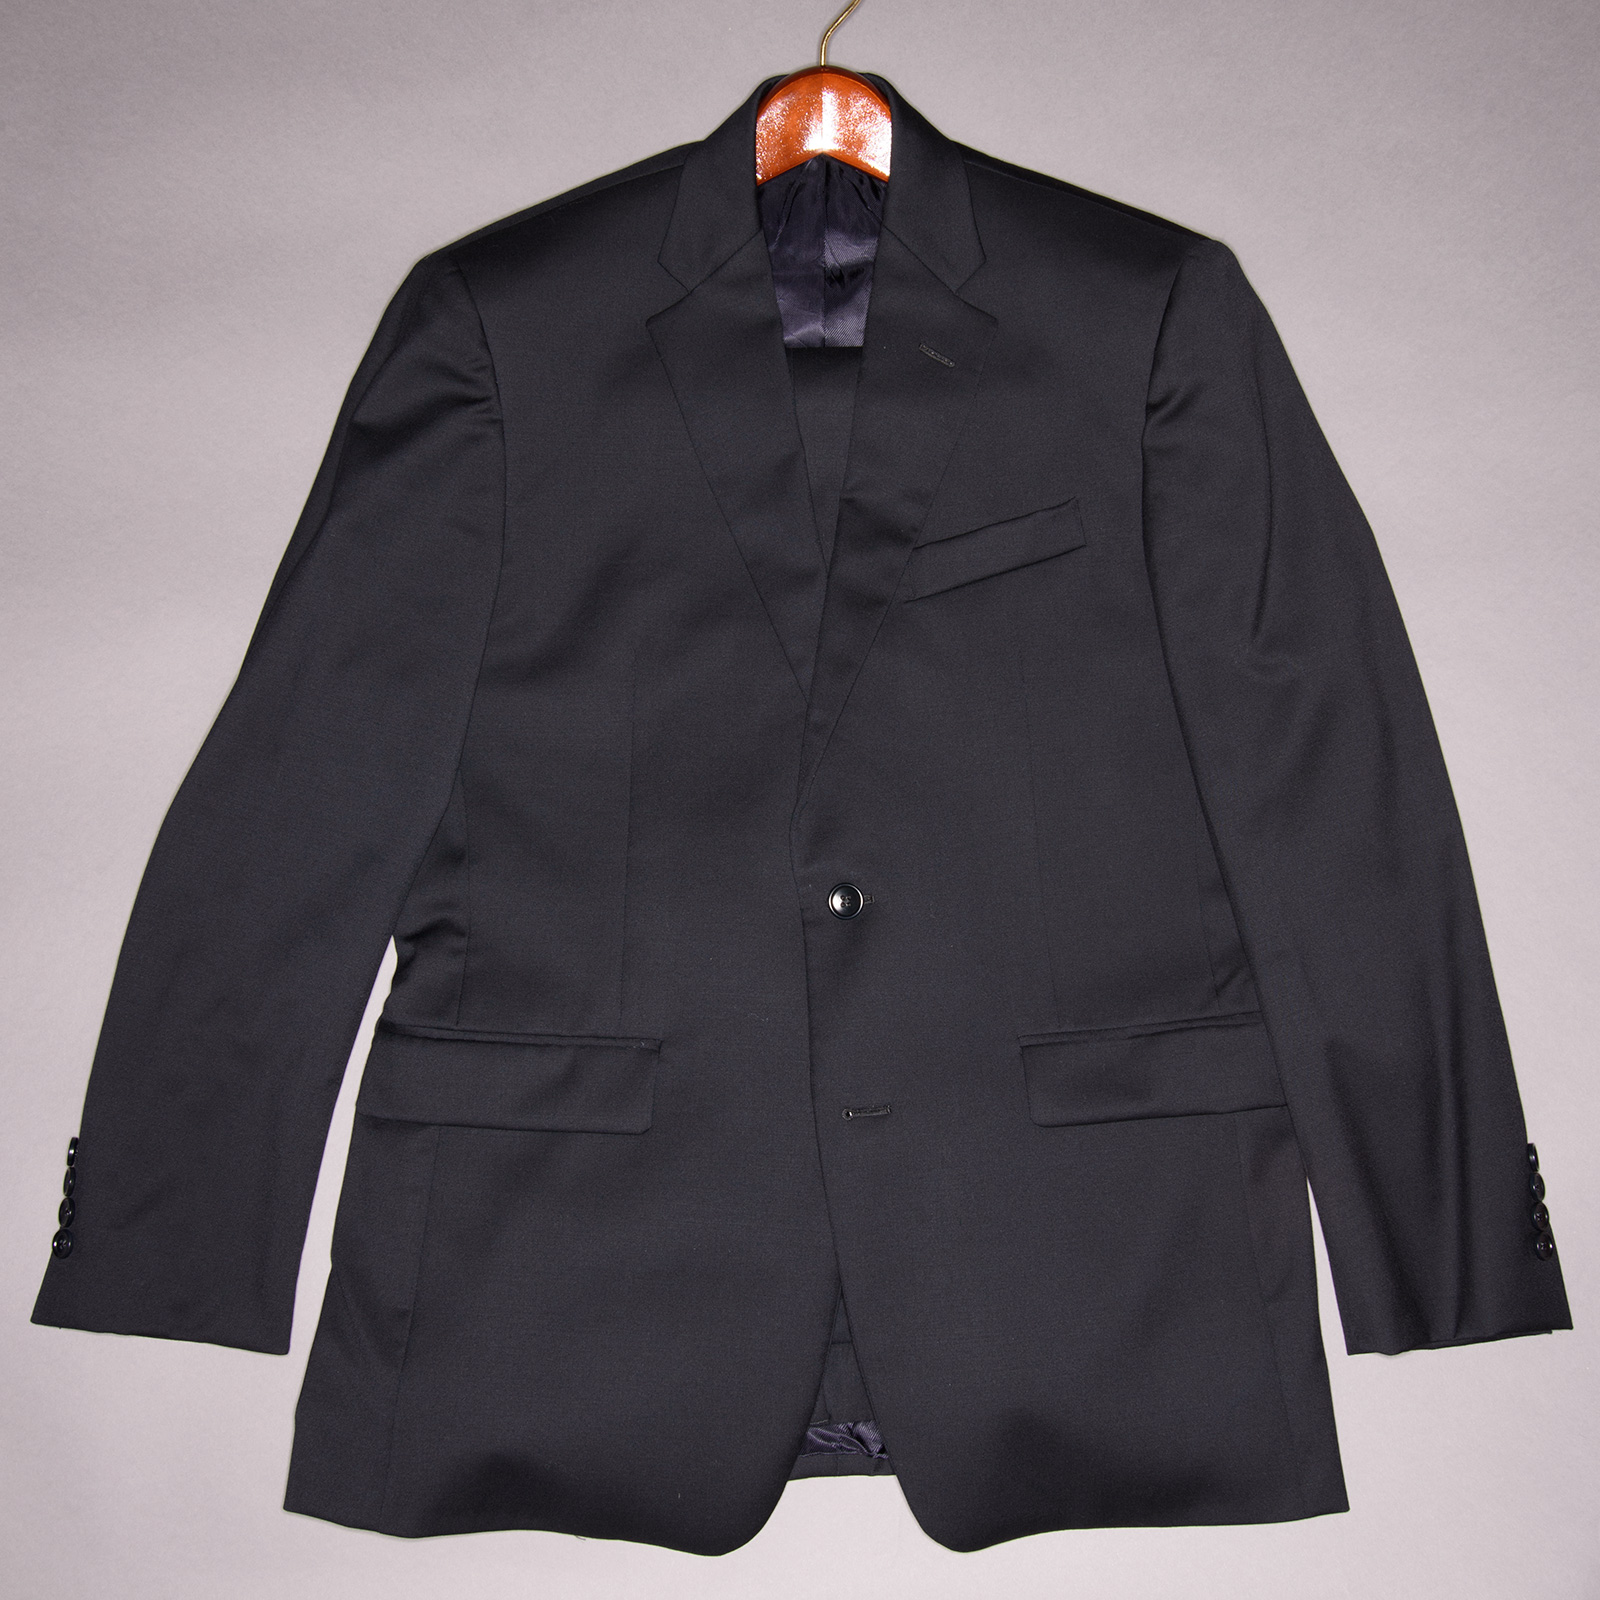 Suit Jacket Bubbling After Dry Cleaning